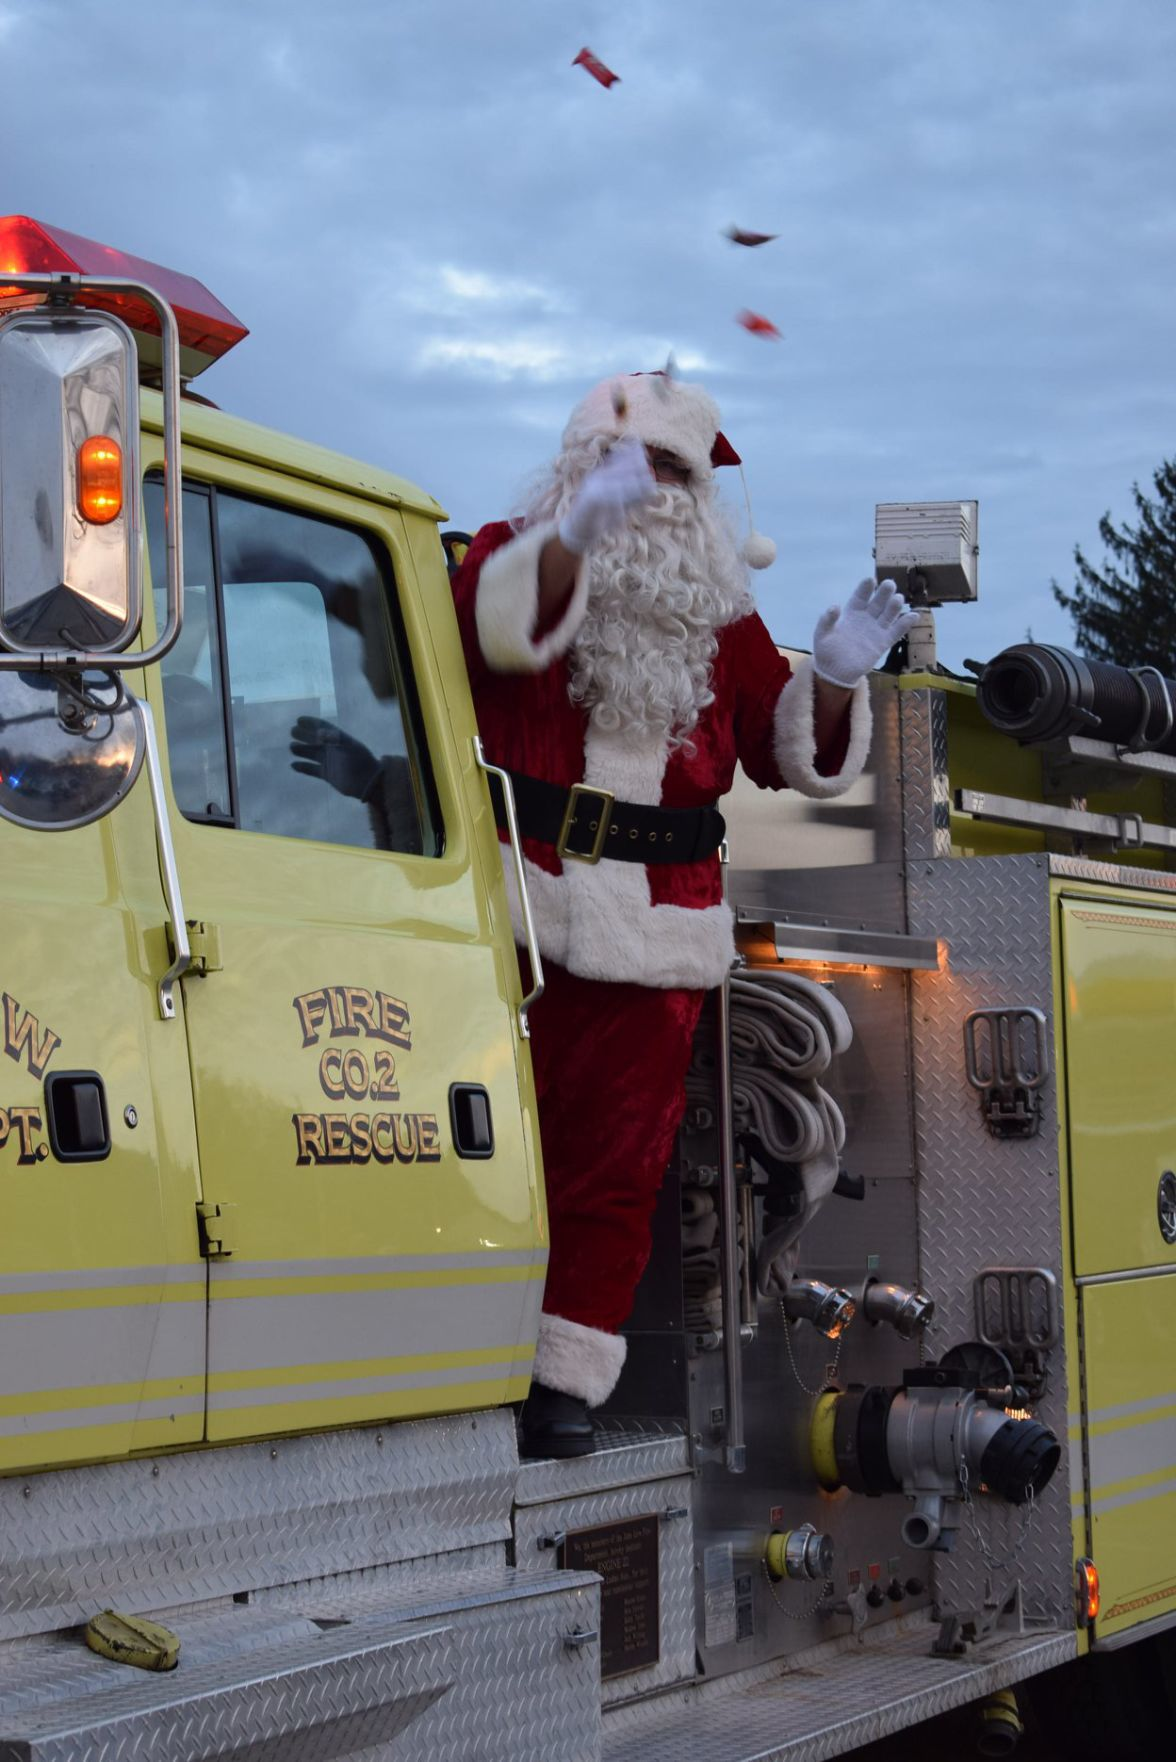 Holiday activities planned in Lewis County